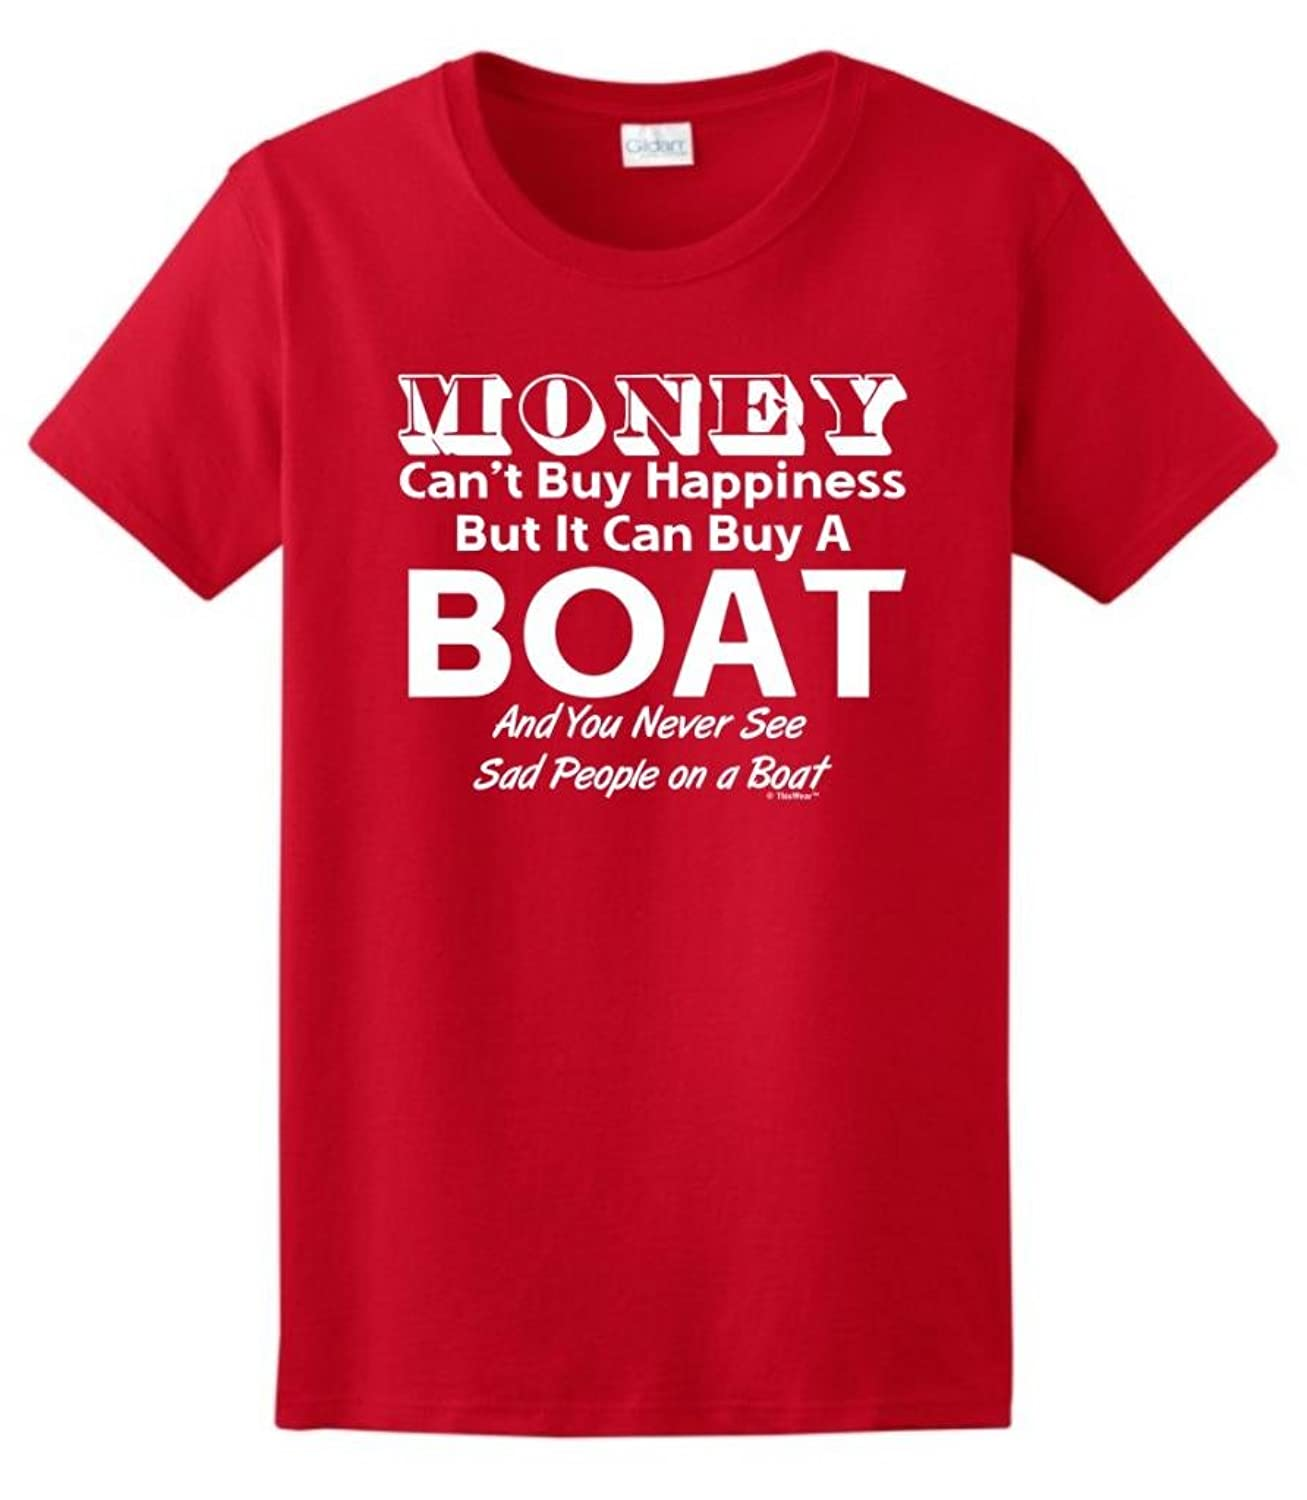 Money Can't Buy Happiness But It Can Buy a Boat Ladies T-Shirt